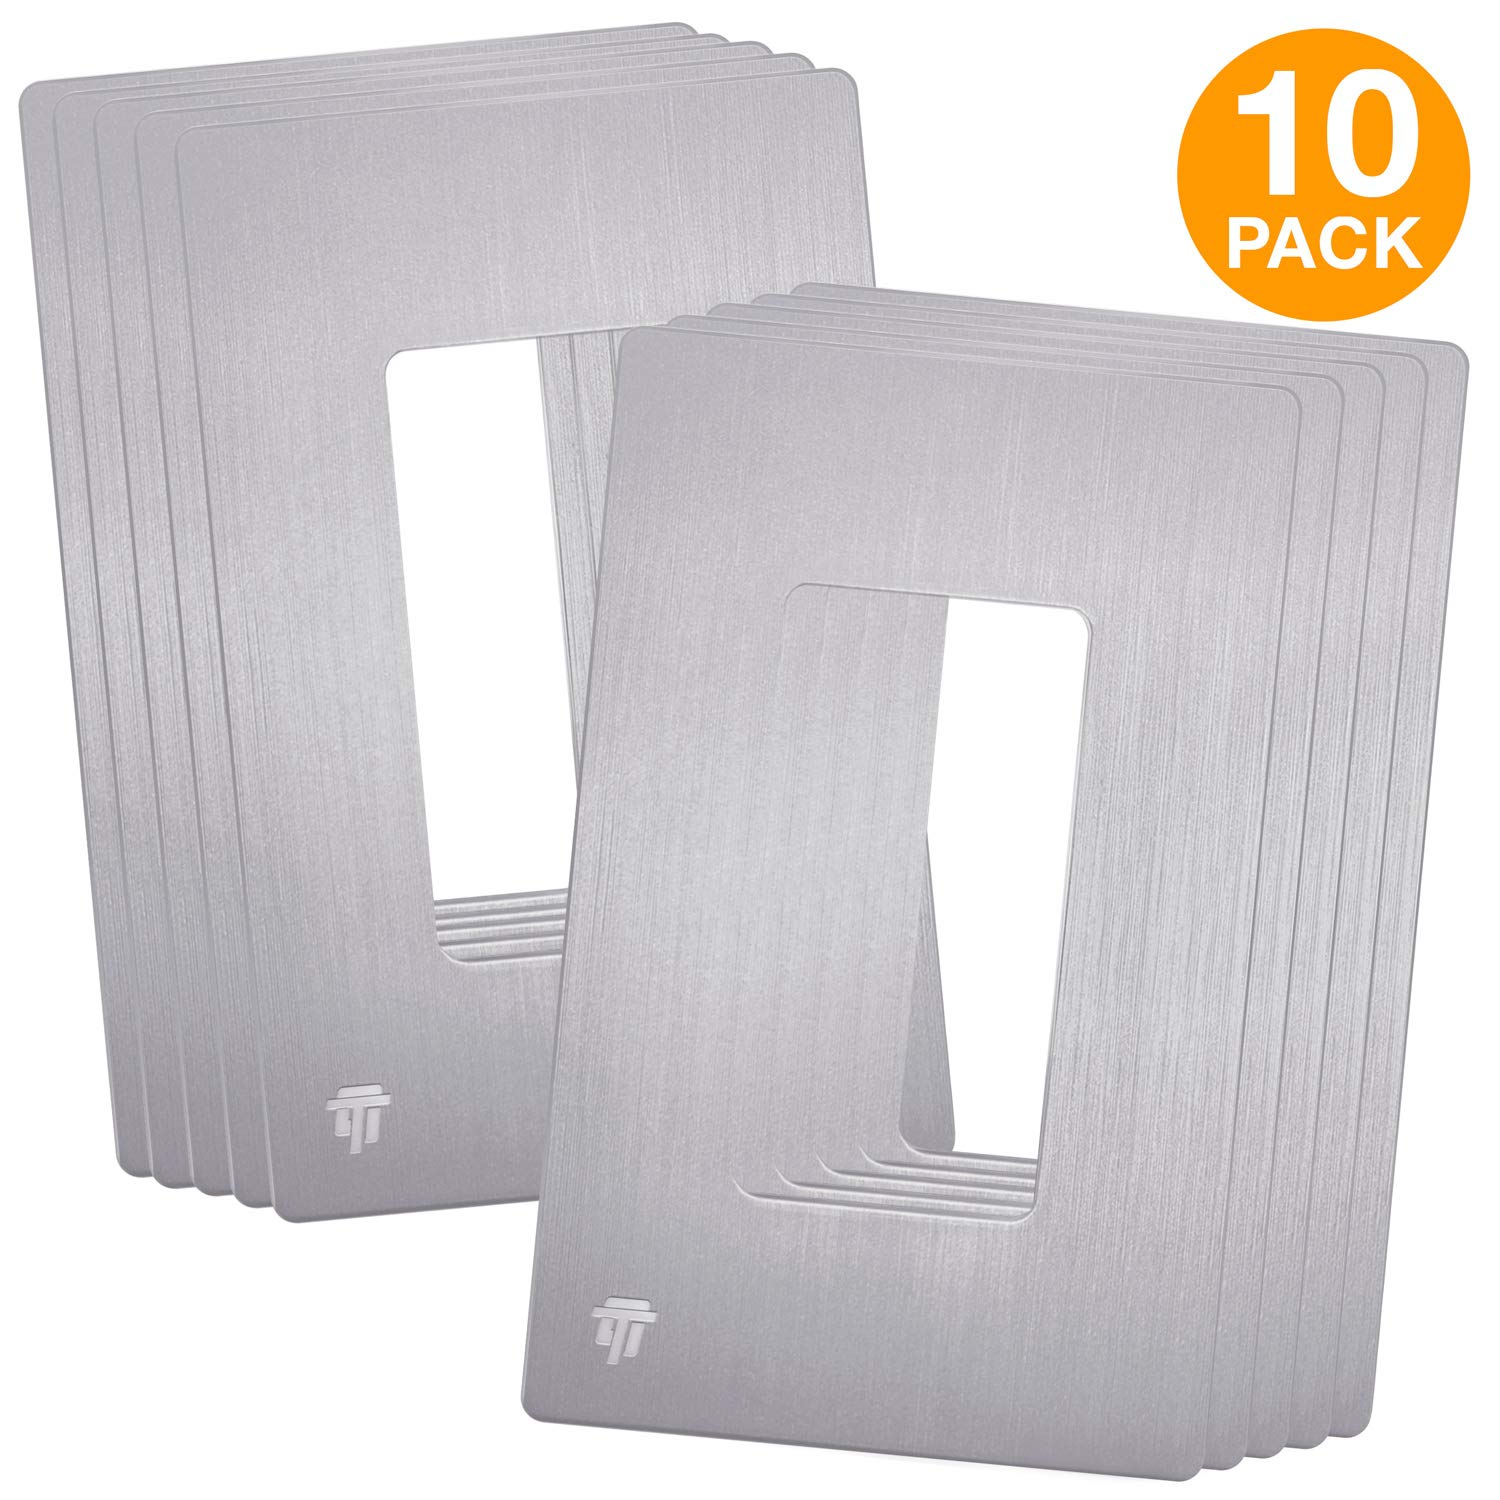 Enerlites SI8831-BSV-10PCS Elite Series Brushed Decorative Screwless Cover Child Safe Decorator Wall Plate, Standard Size 1-Gang, Polycarbonate Thermoplastic, 10 Pack, Silver Color …